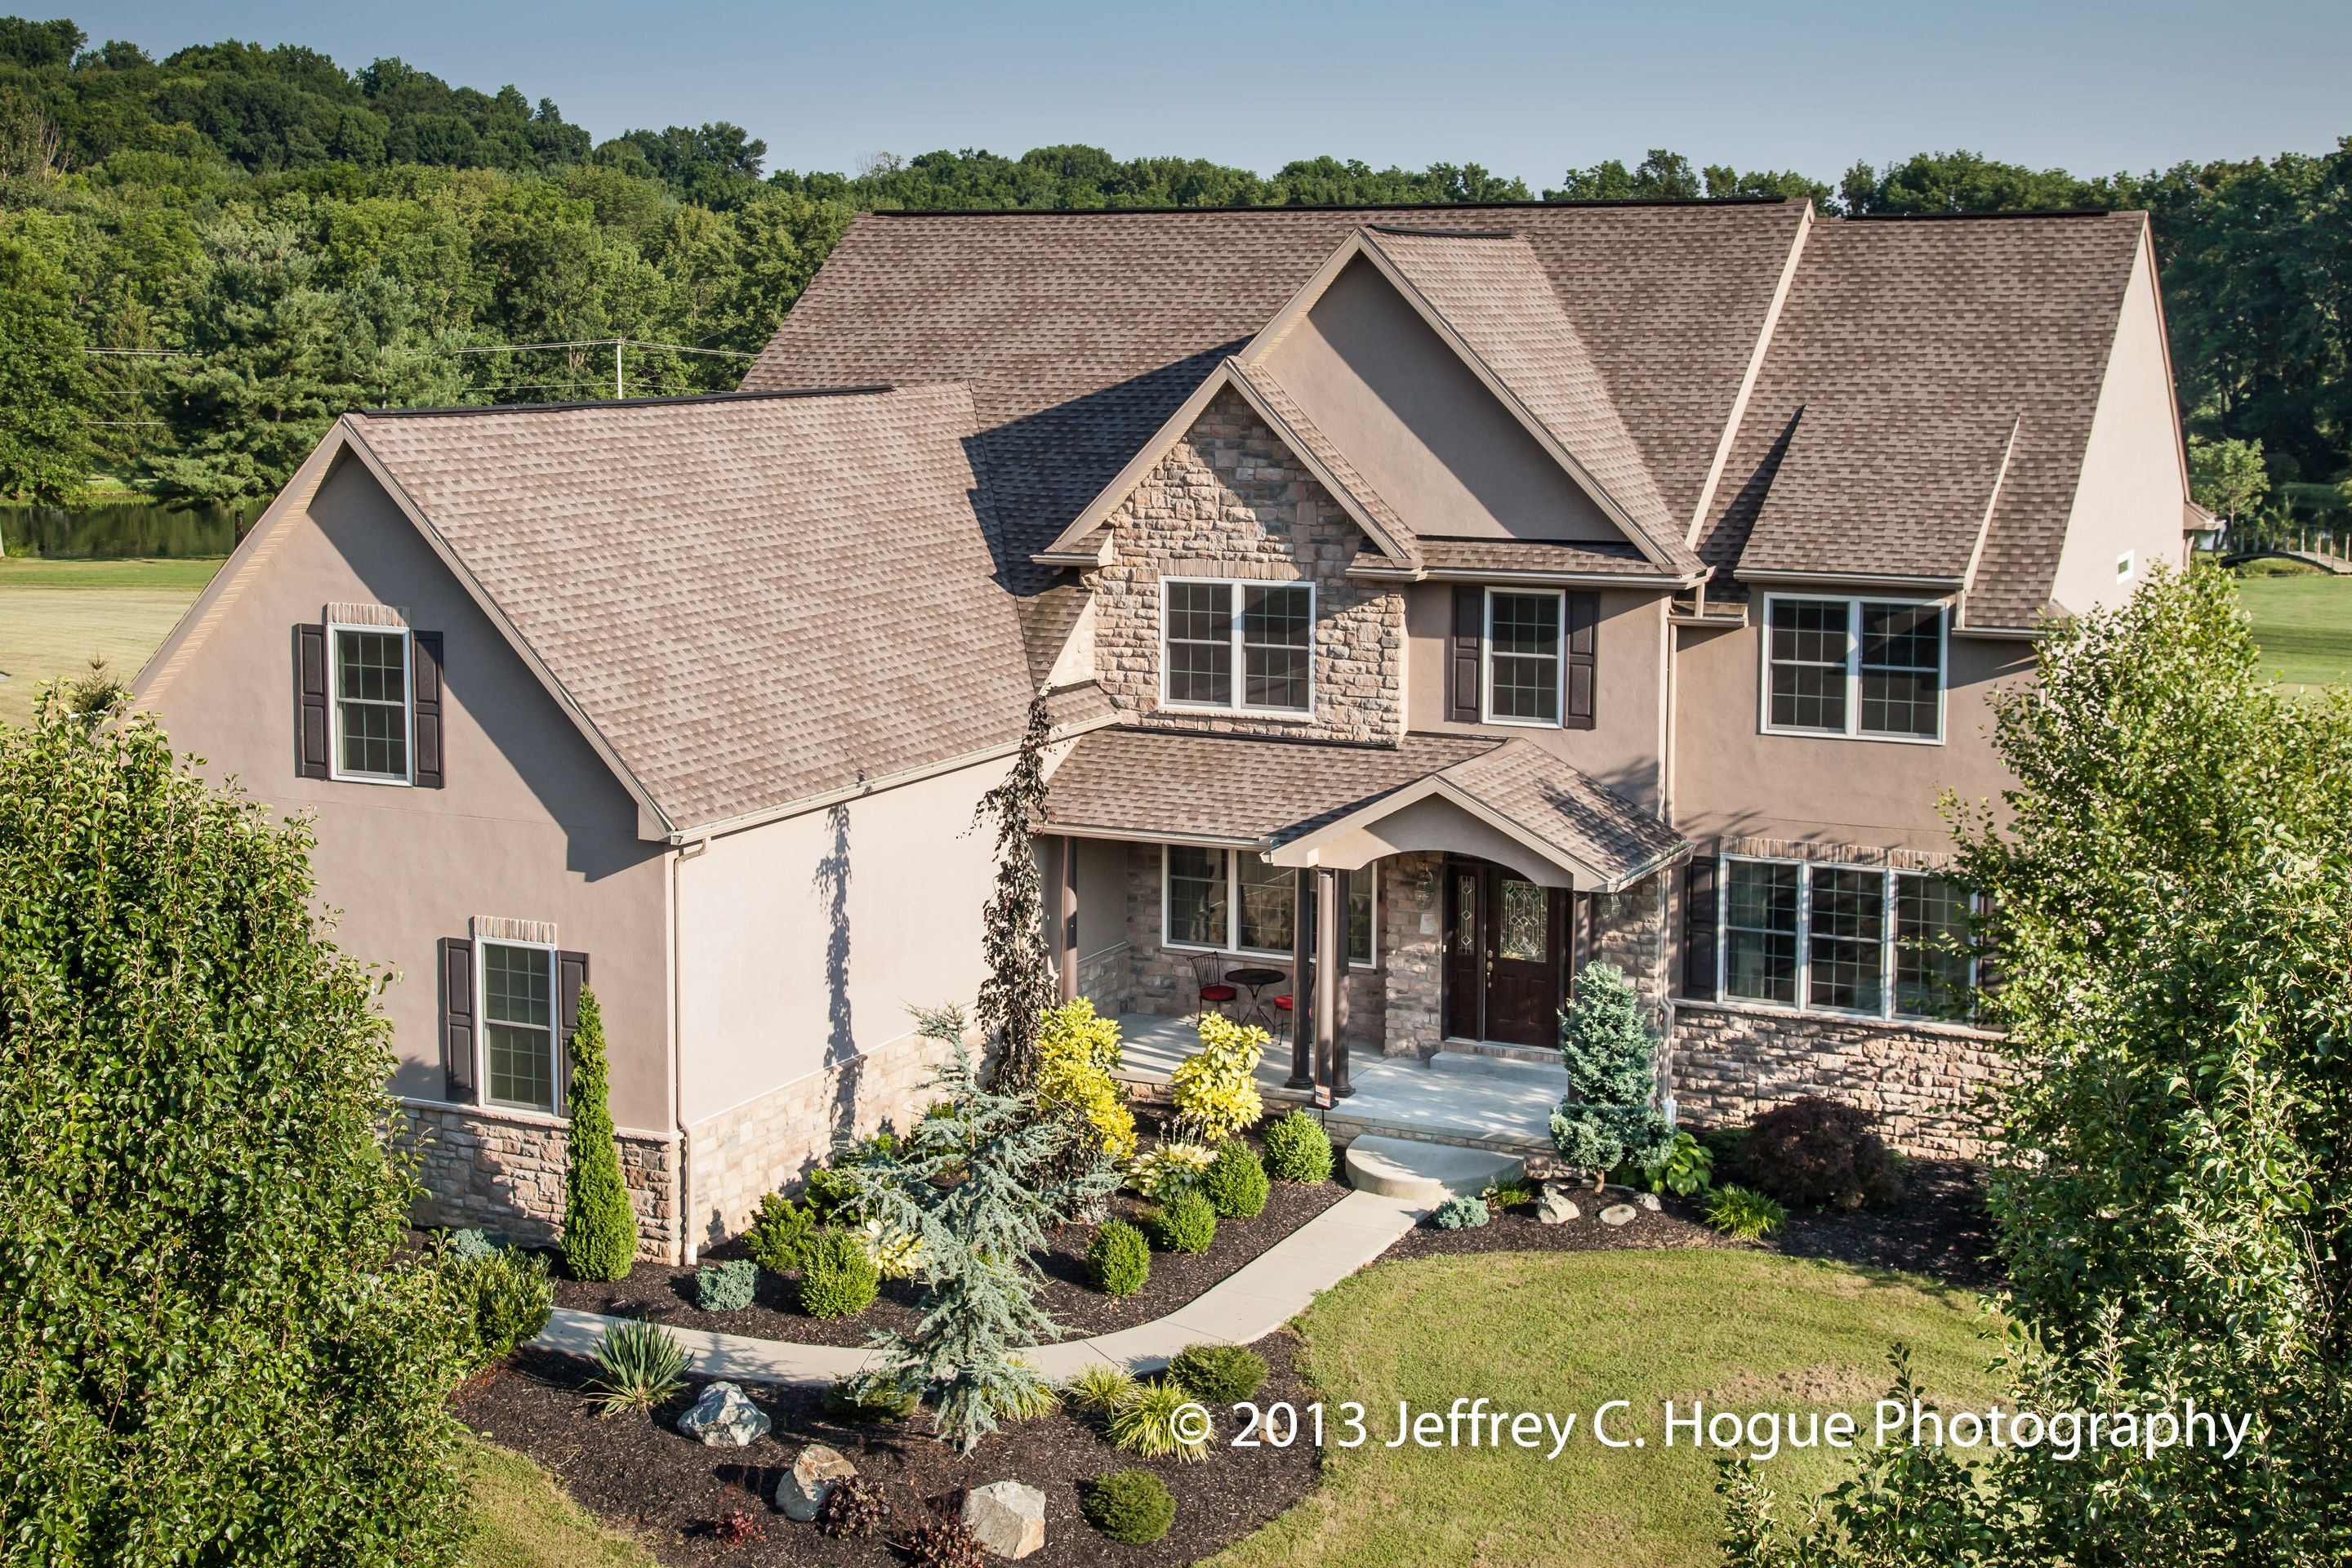 Beautiful Glen Oley Estates In Exeter Township Berks County Pa On My Website Http Jeffreyhoguerealtor Real Estate Photography House Styles Real Estate